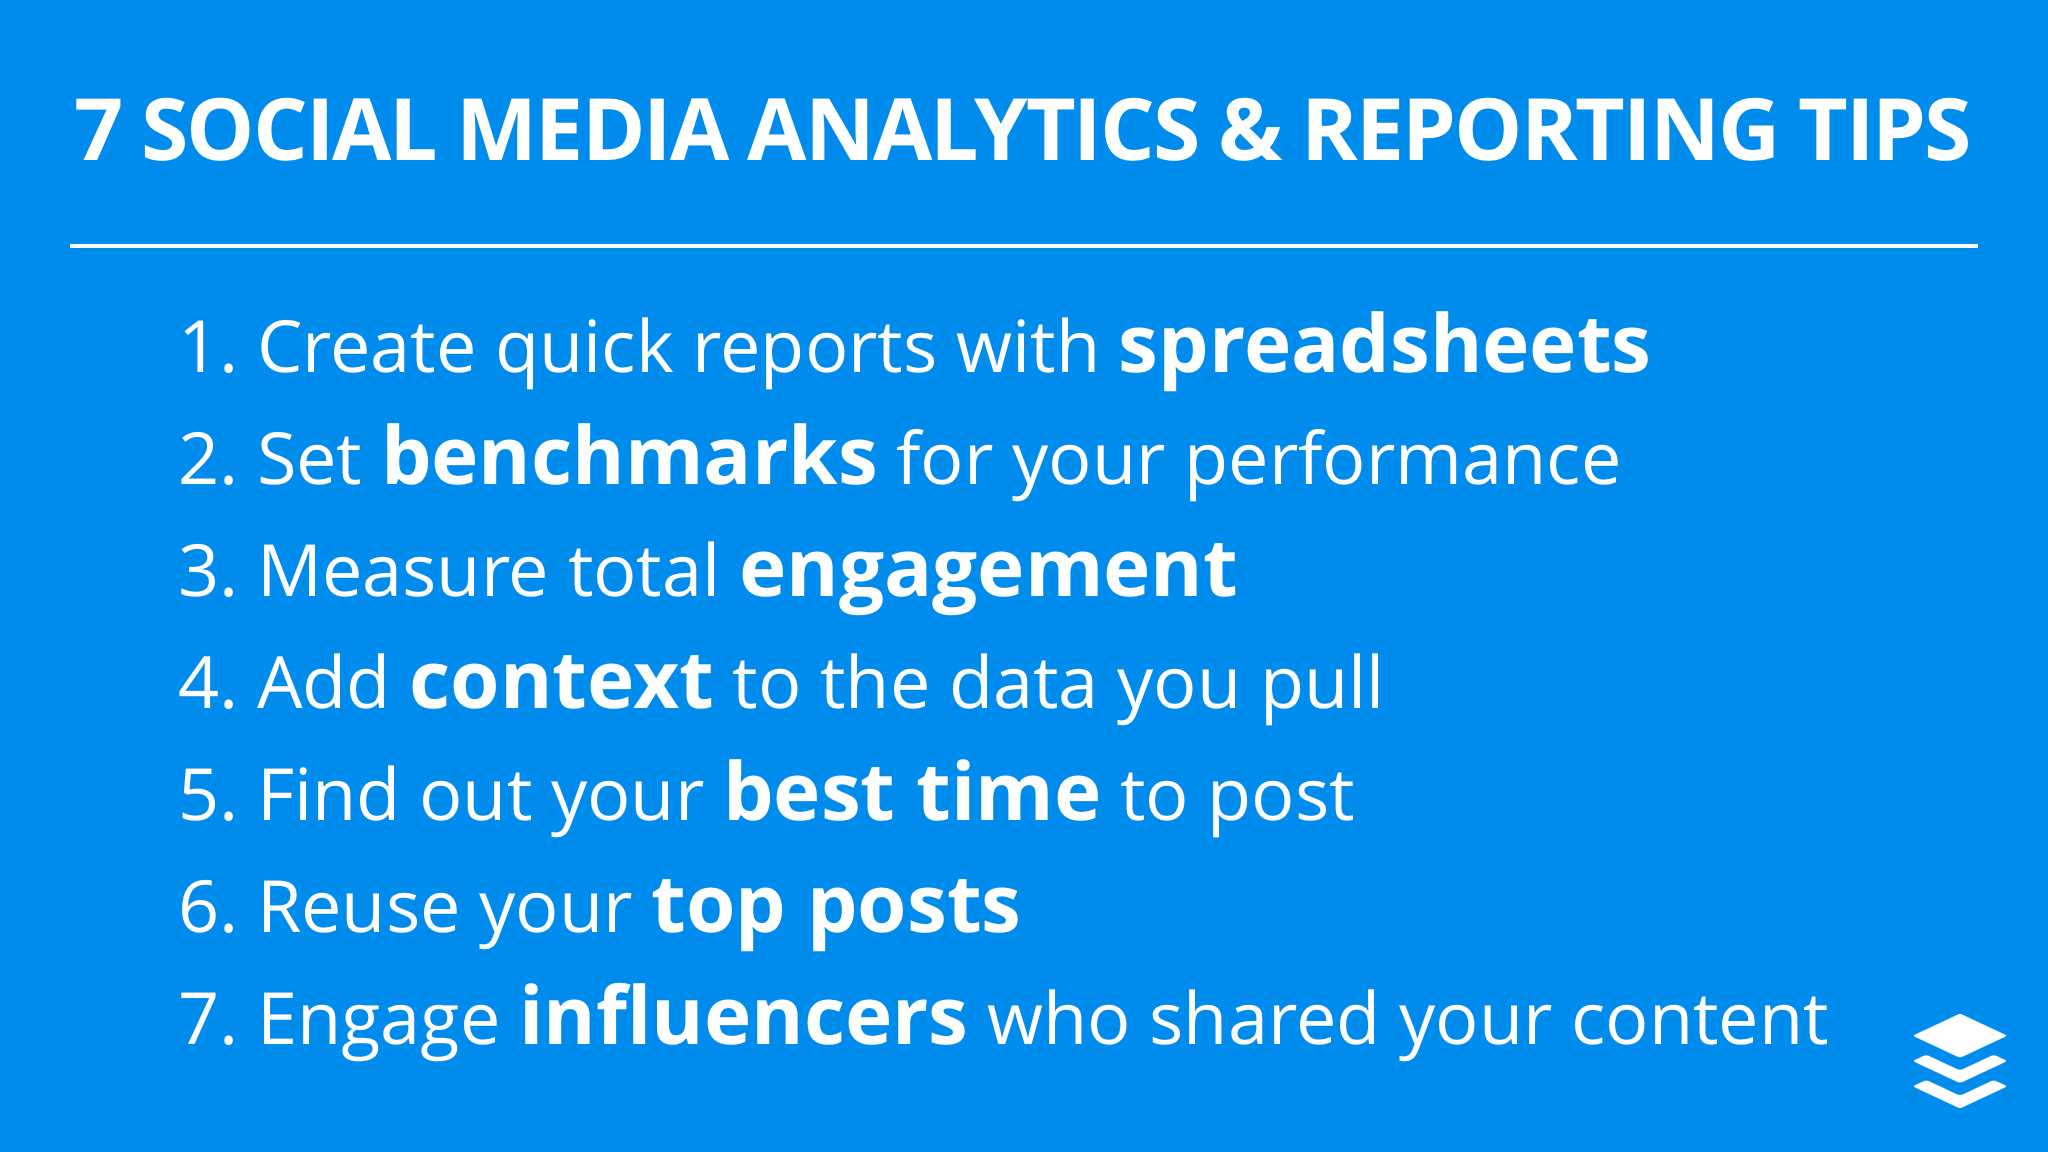 7 Social Media Analytics and Reporting Tips for Becoming a Data-Savvy Marketer